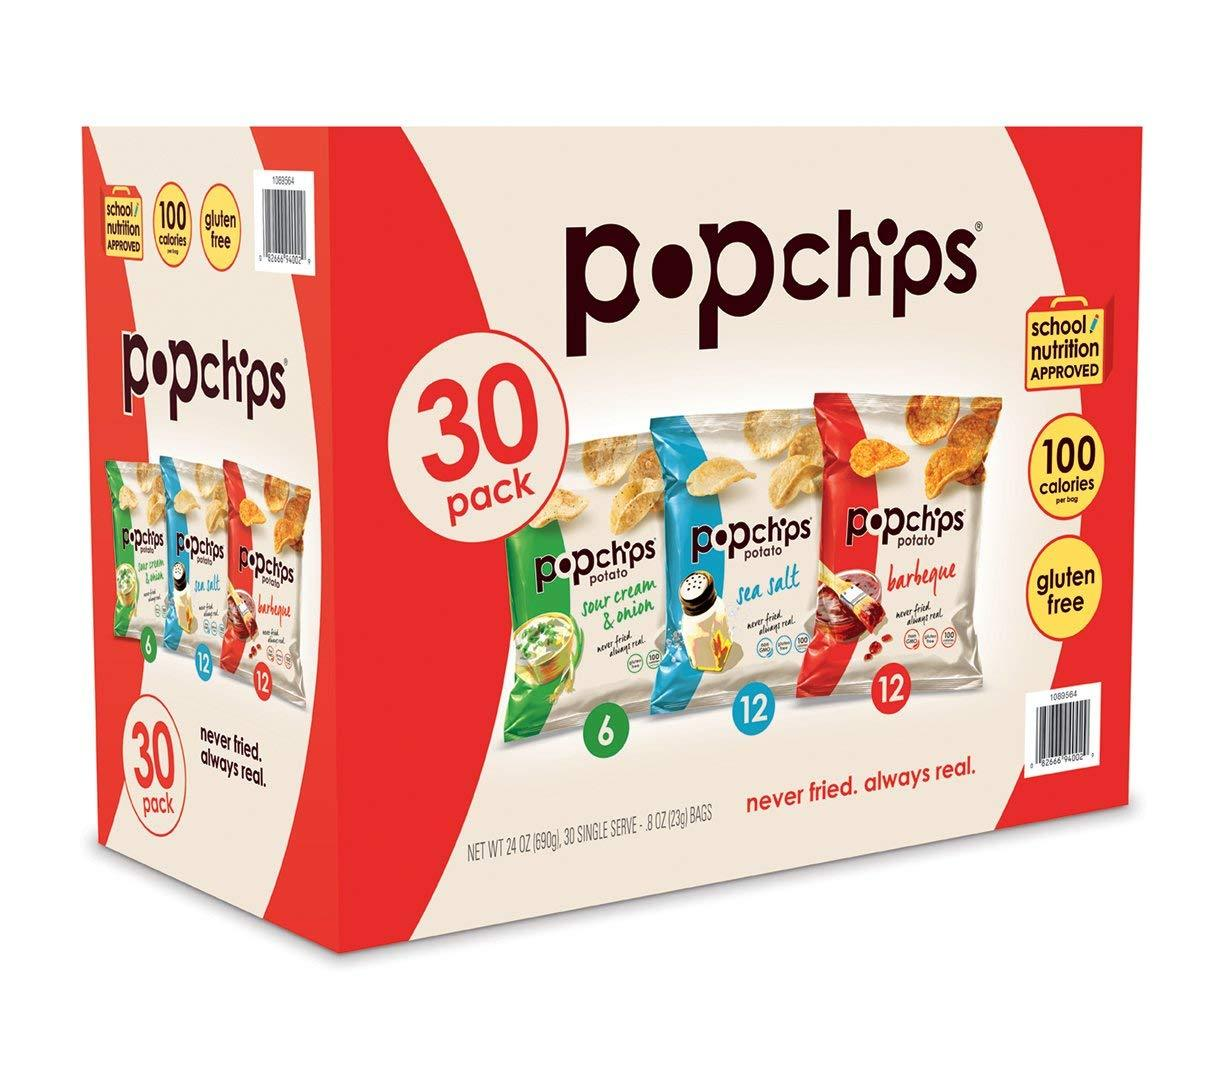 Popchips Potato Chips Popchips Variety 0.8 Oz-30 Ct